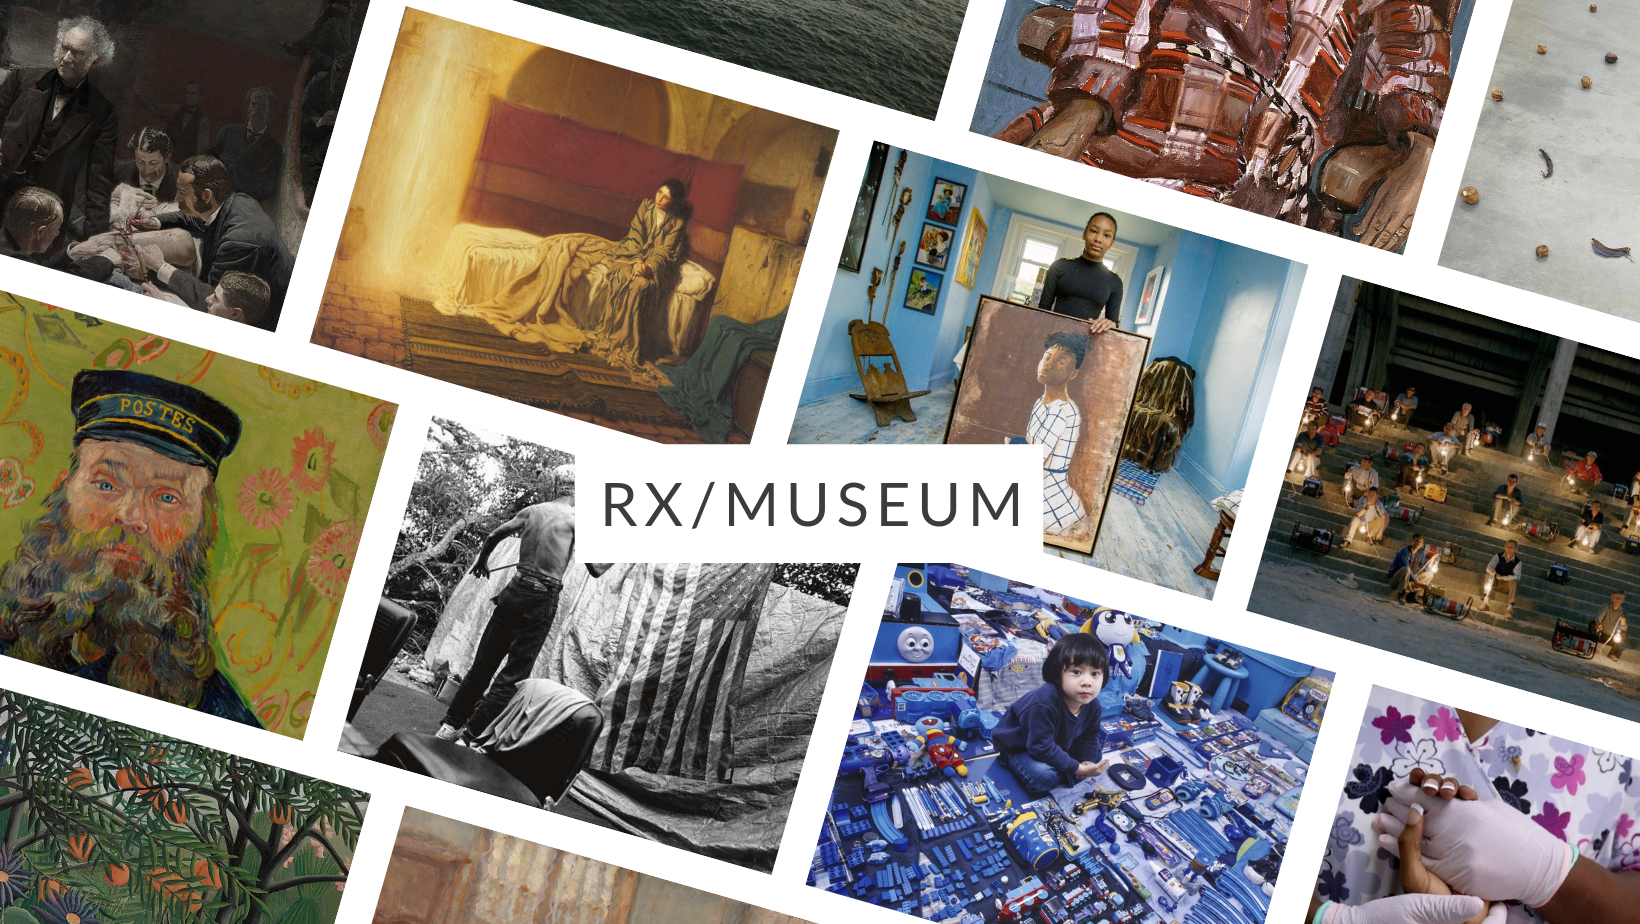 Rx/Museum and various artworks